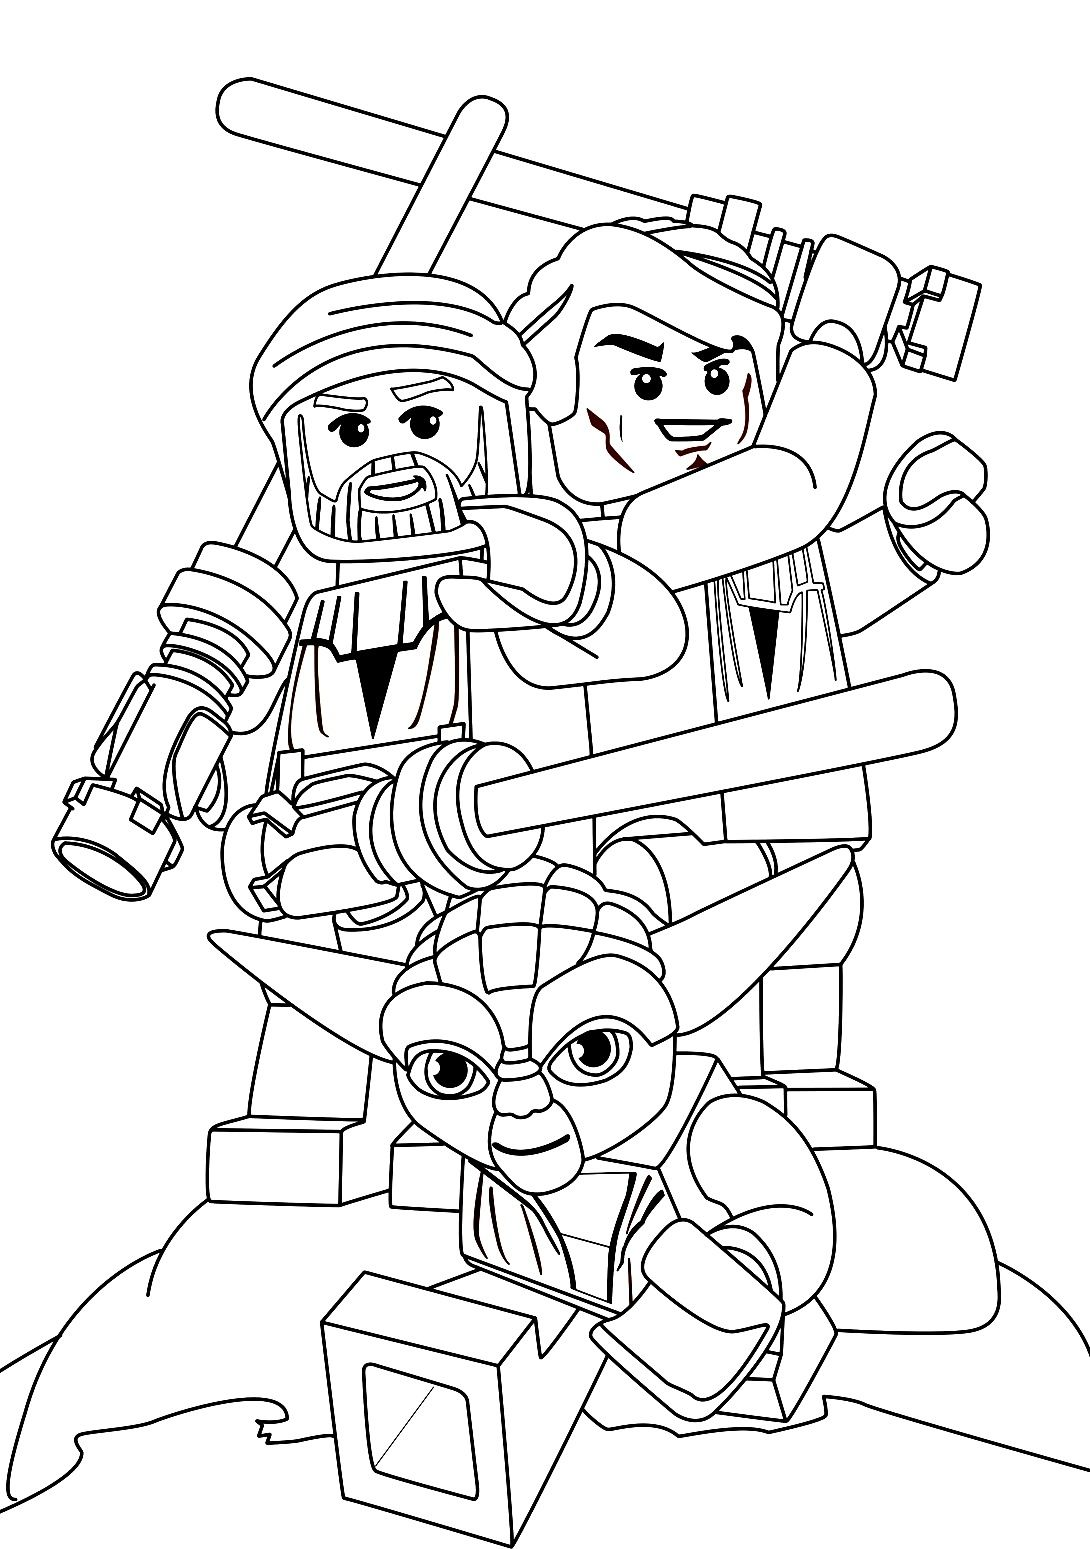 Online star wars coloring pages - Lego Star Wars Coloring Pages